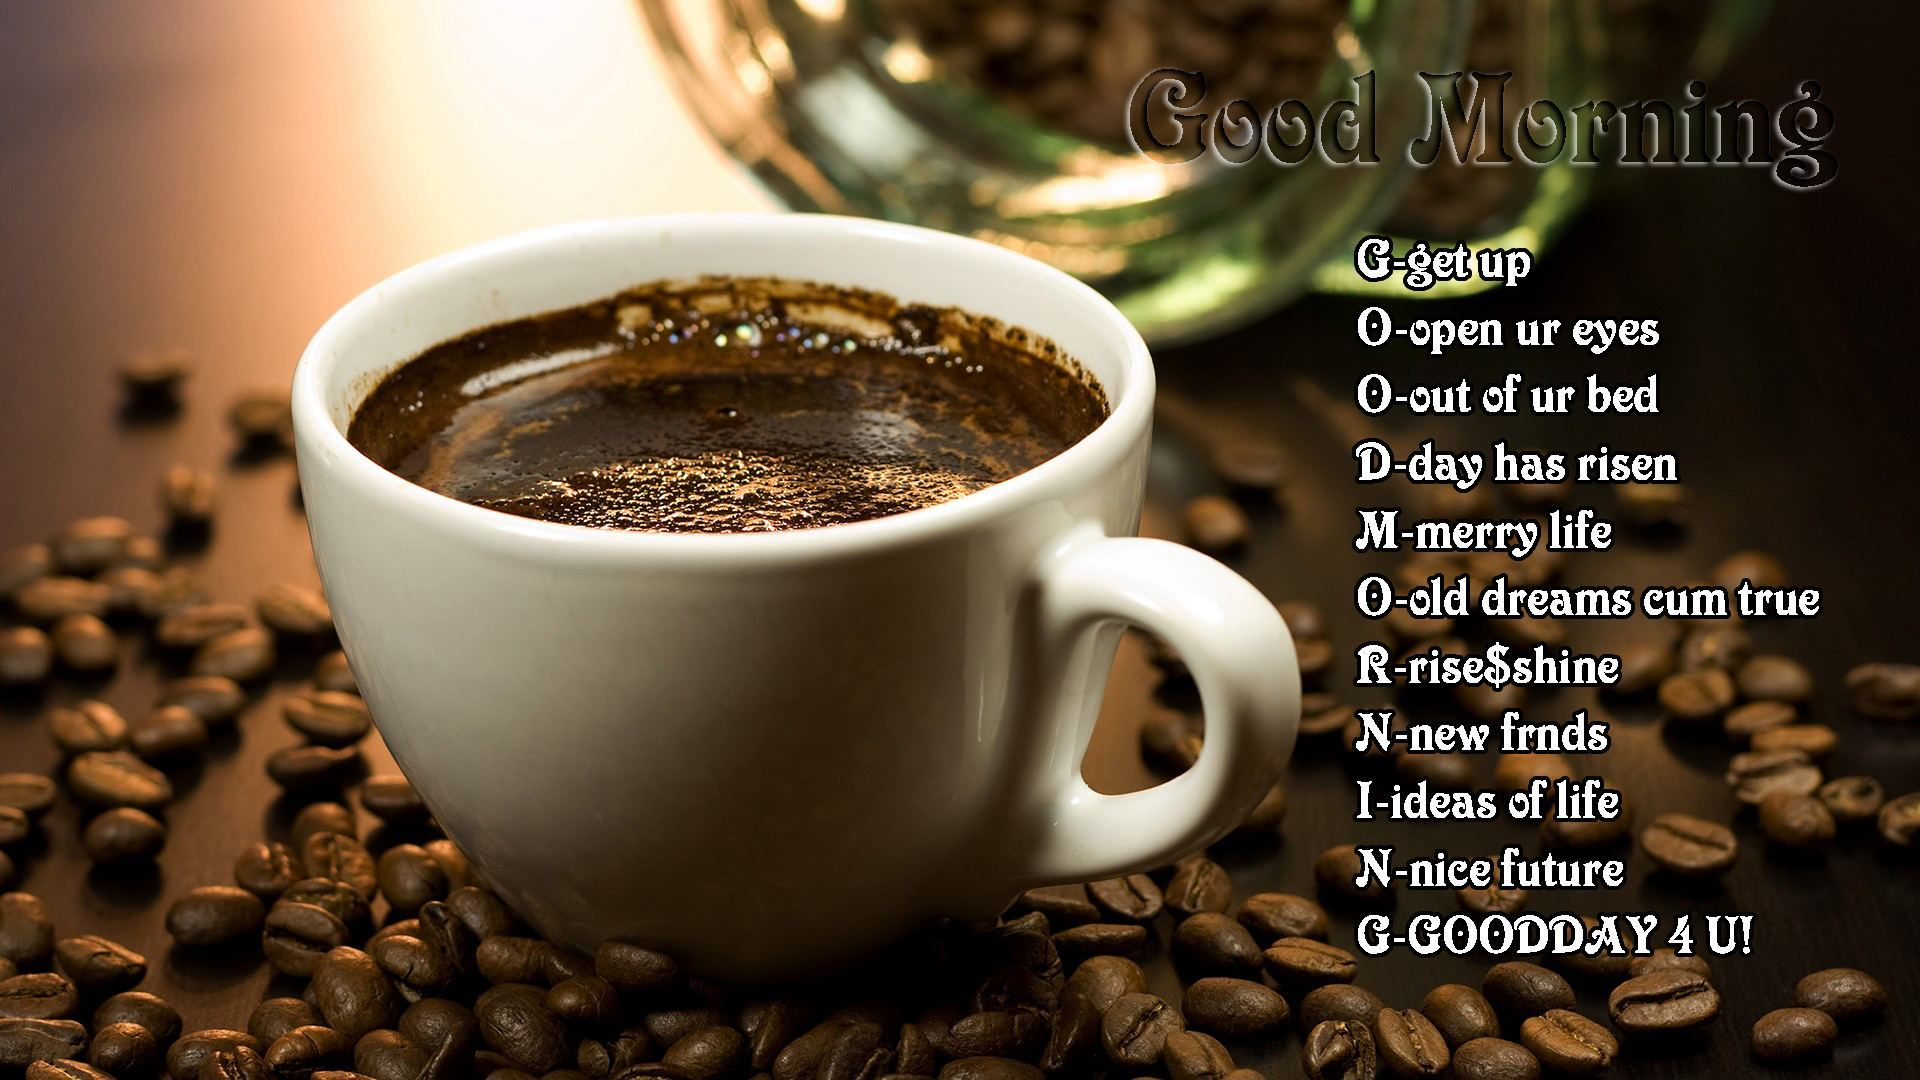 Good-Morning-Coffee-Cup-Quotes